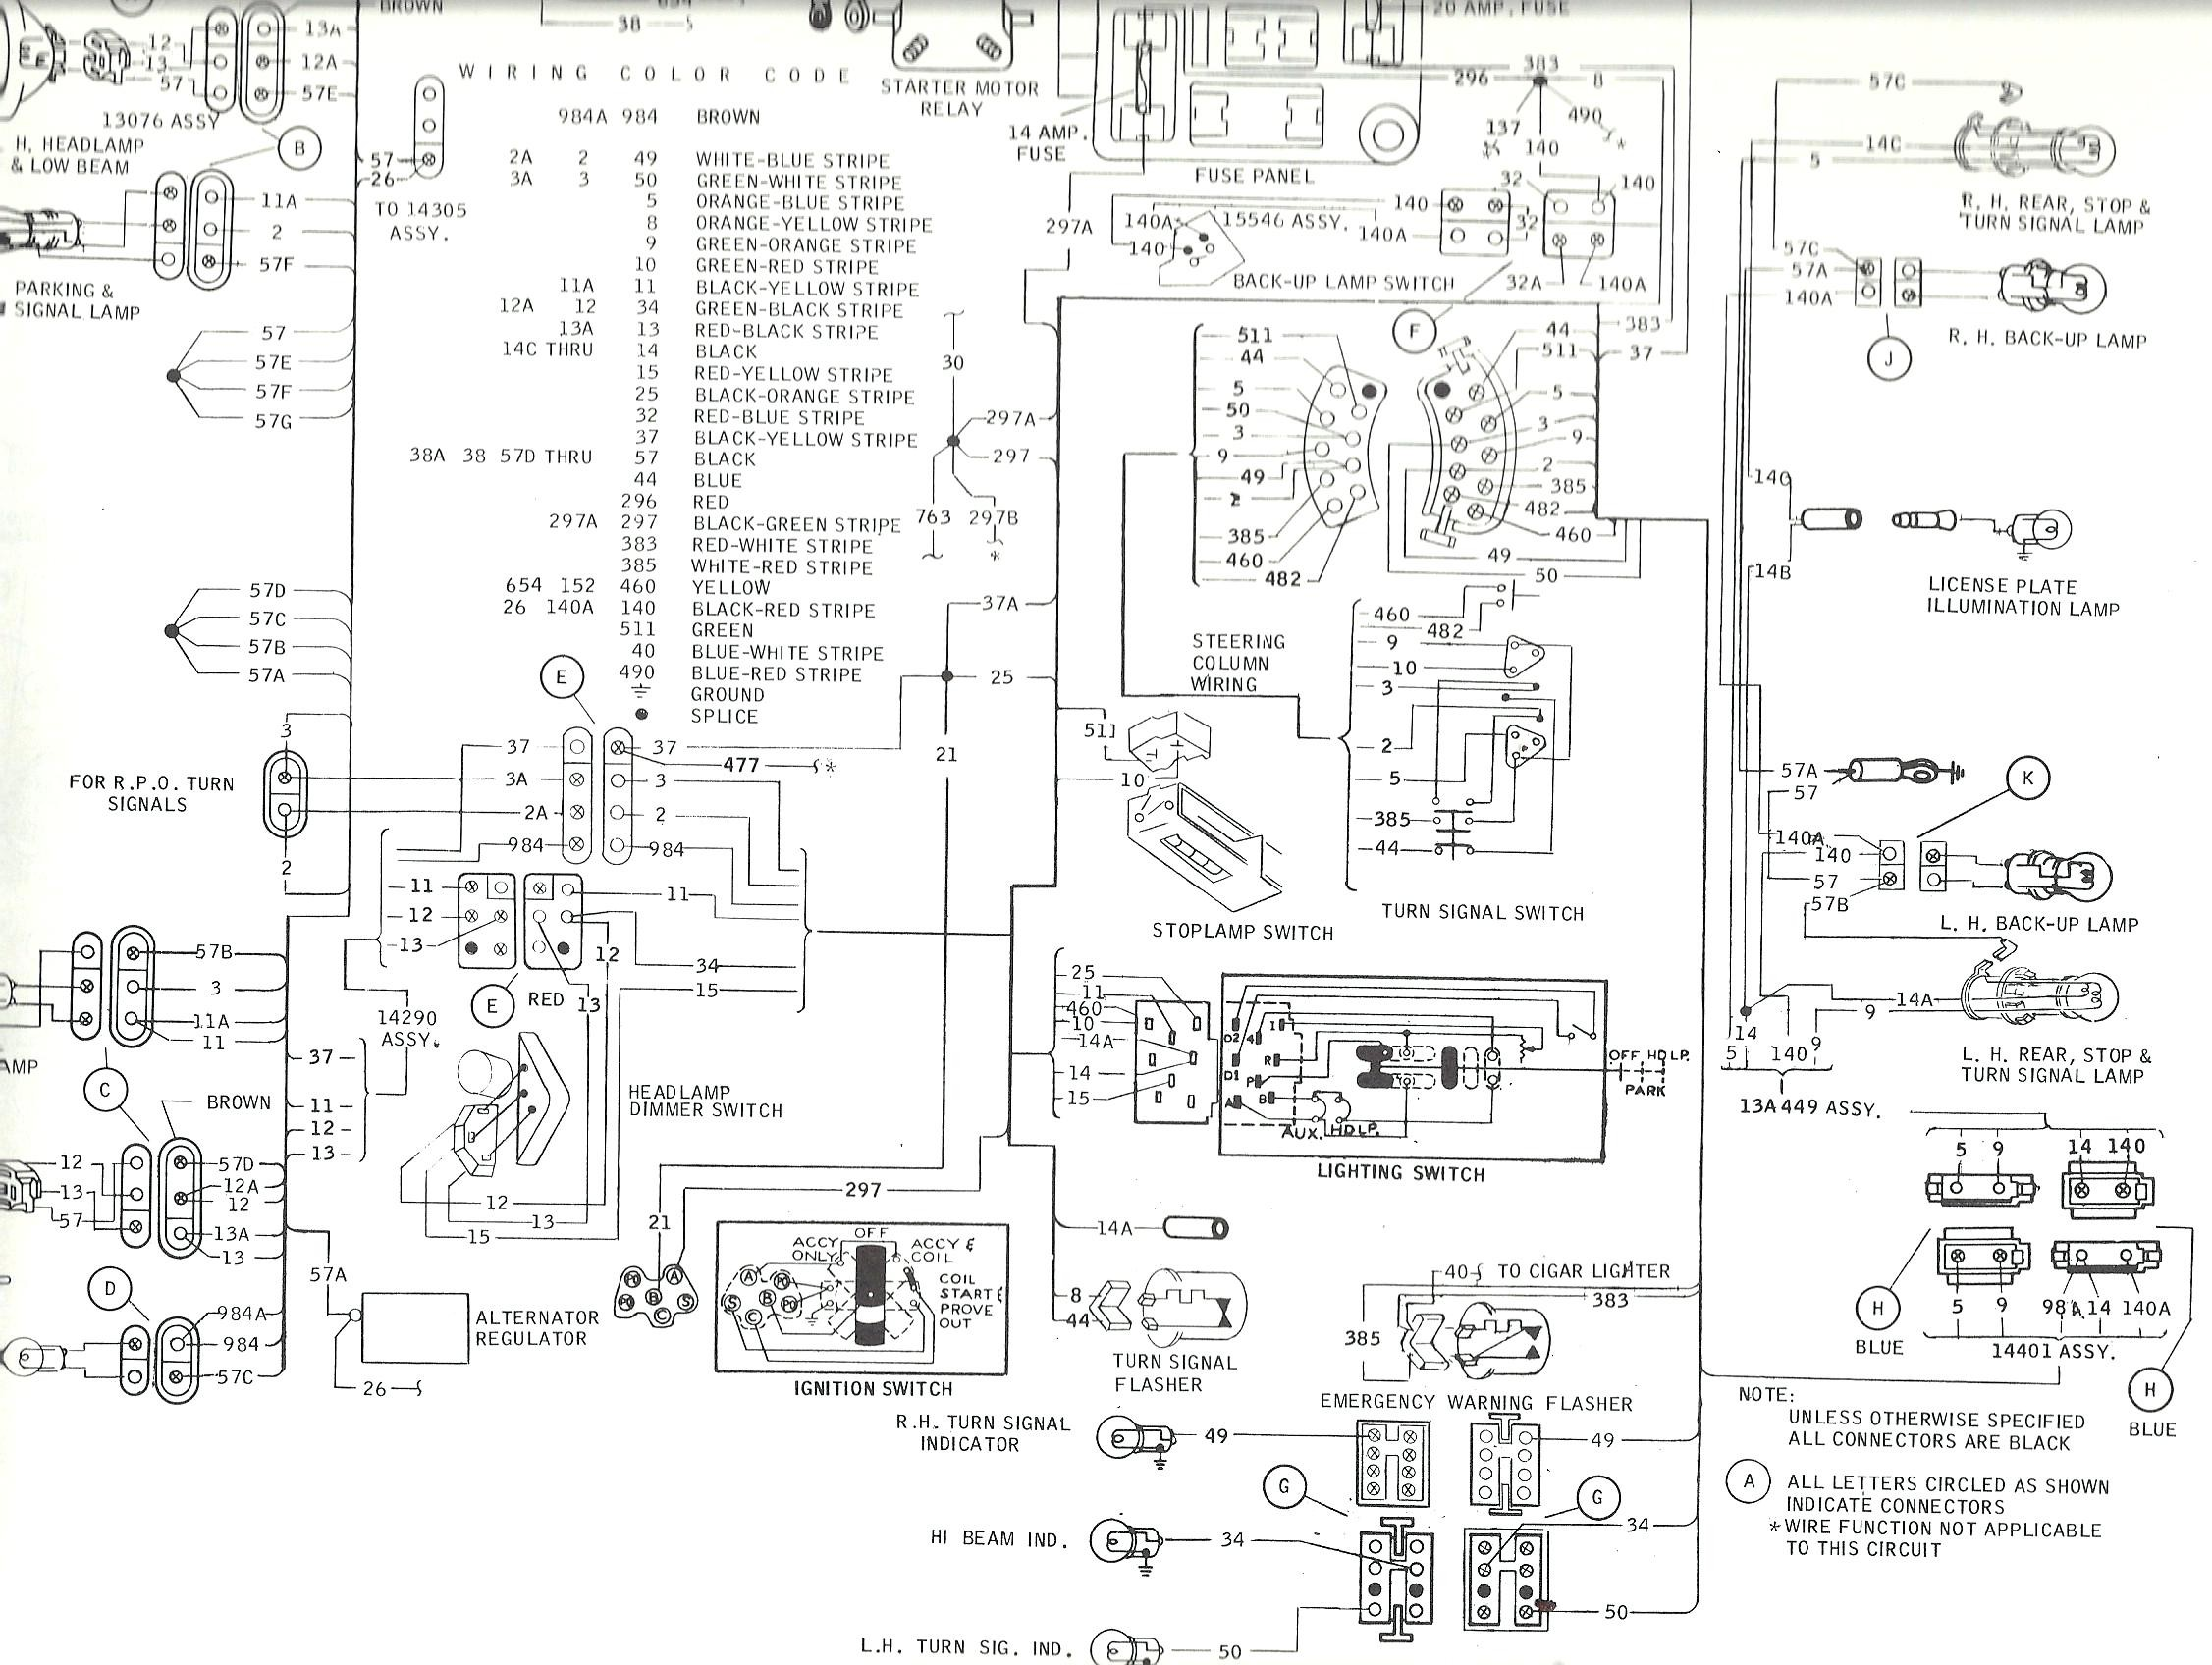 92 mustang turn signal wiring diagram